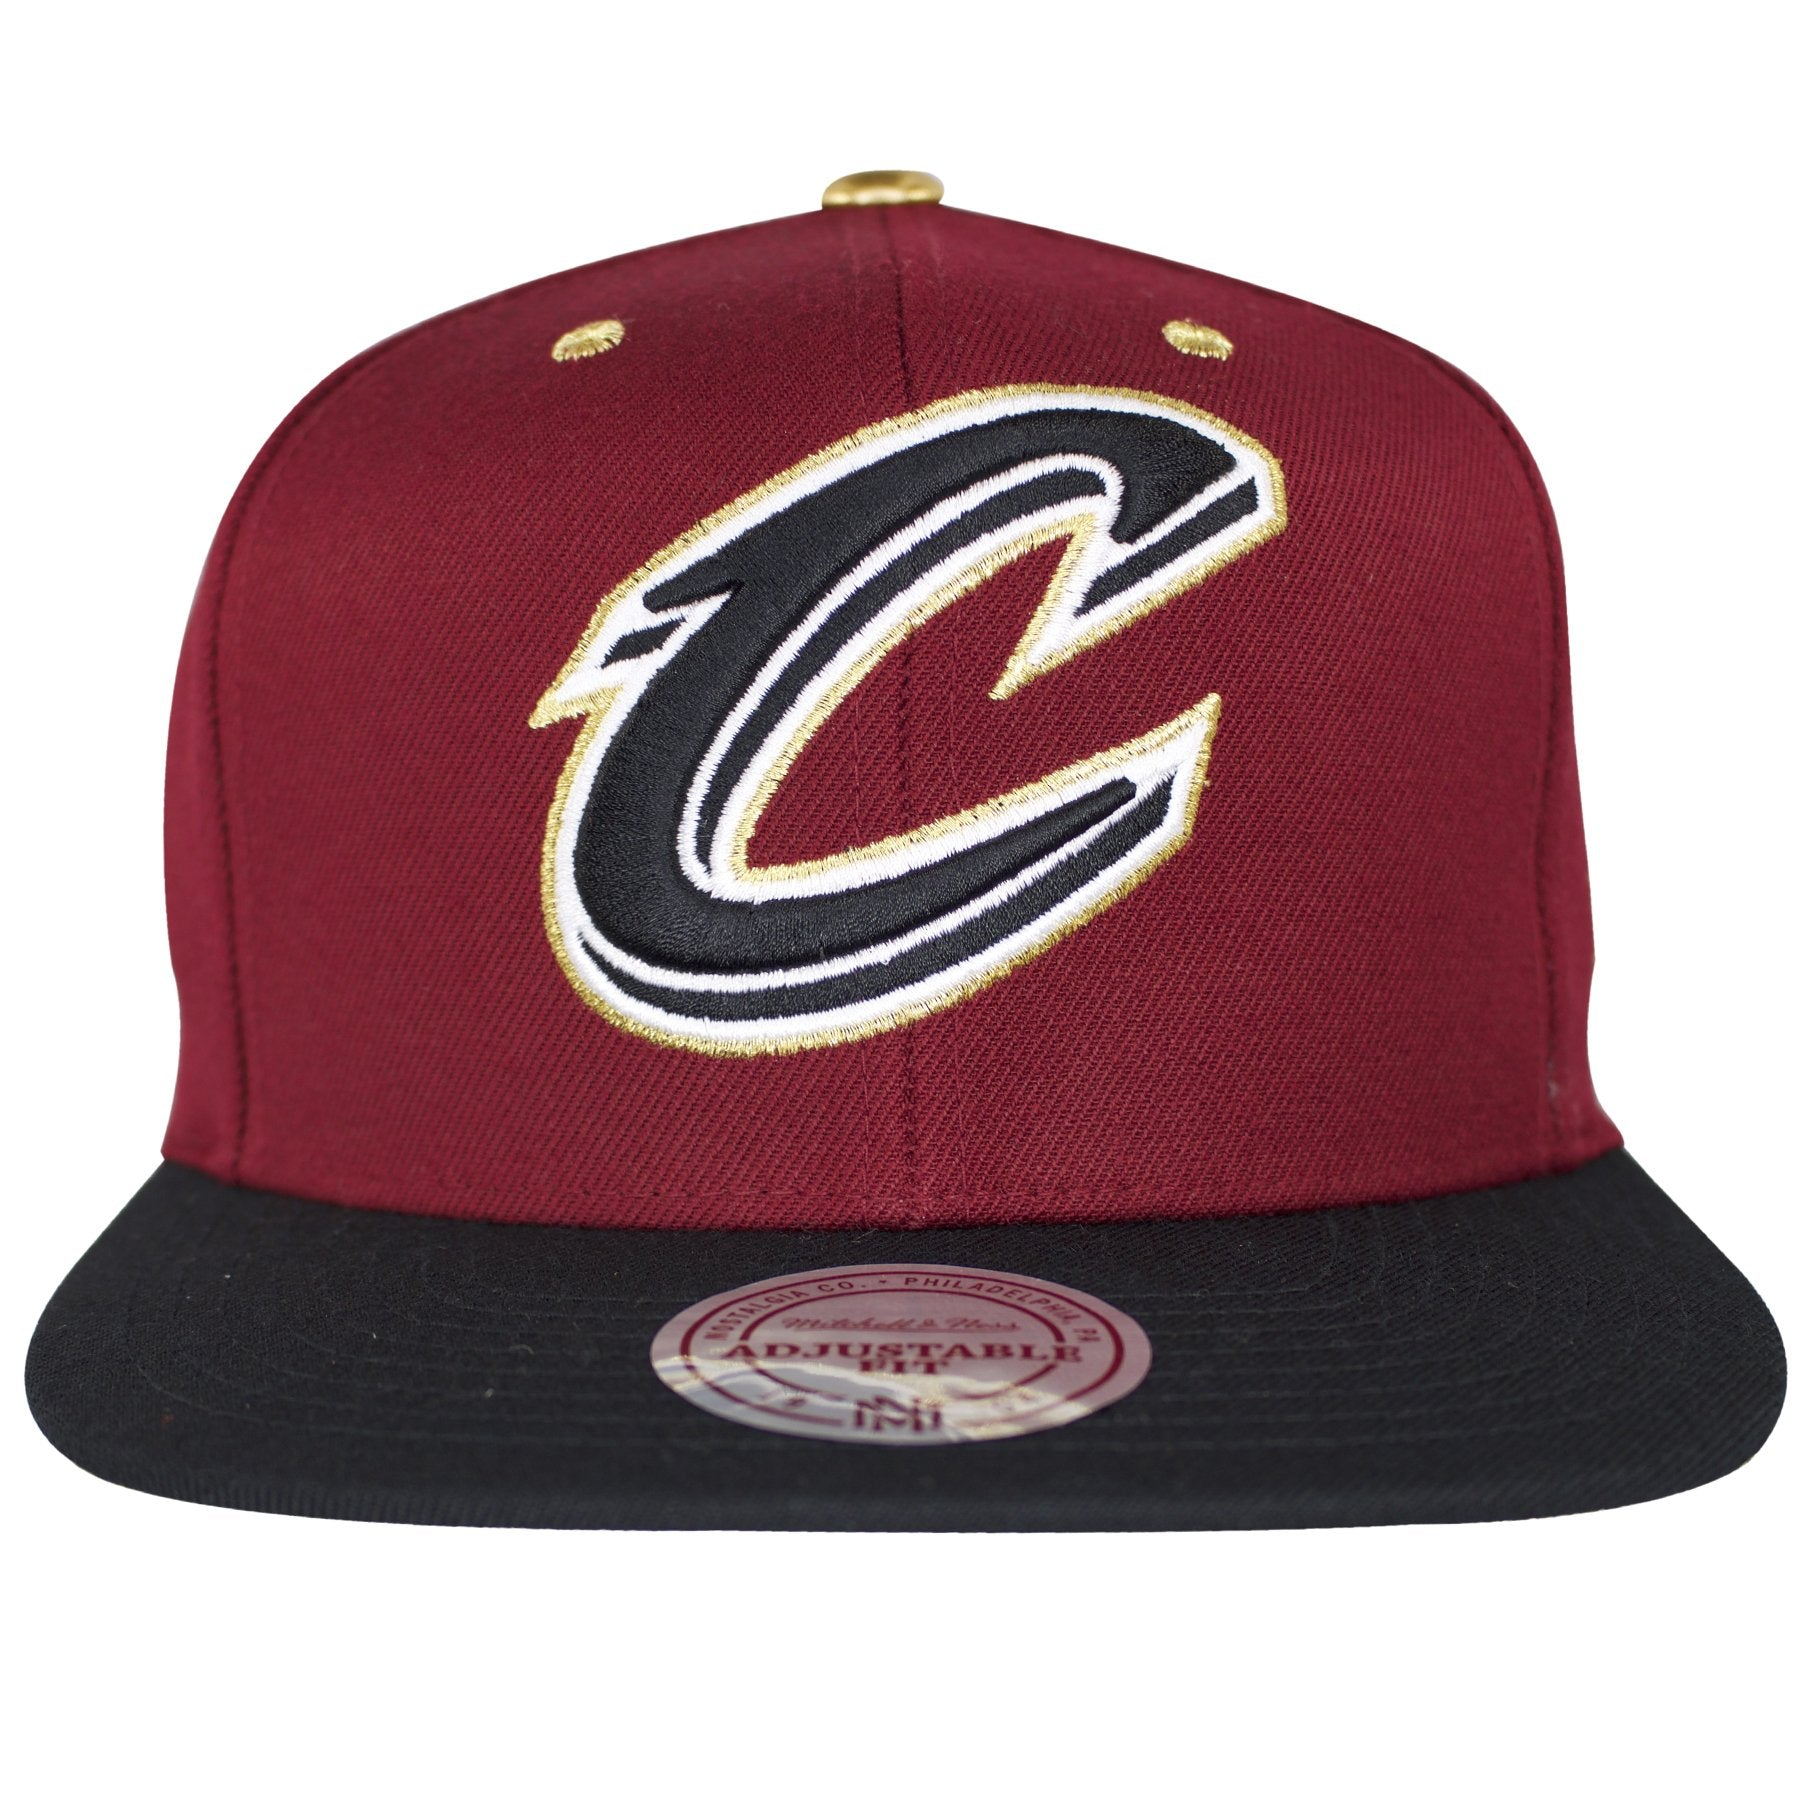 f1cc053bb43e5 This Cleveland Cavaliers snapback hat is a maroon cap with black bill. The  Cavaliers logo